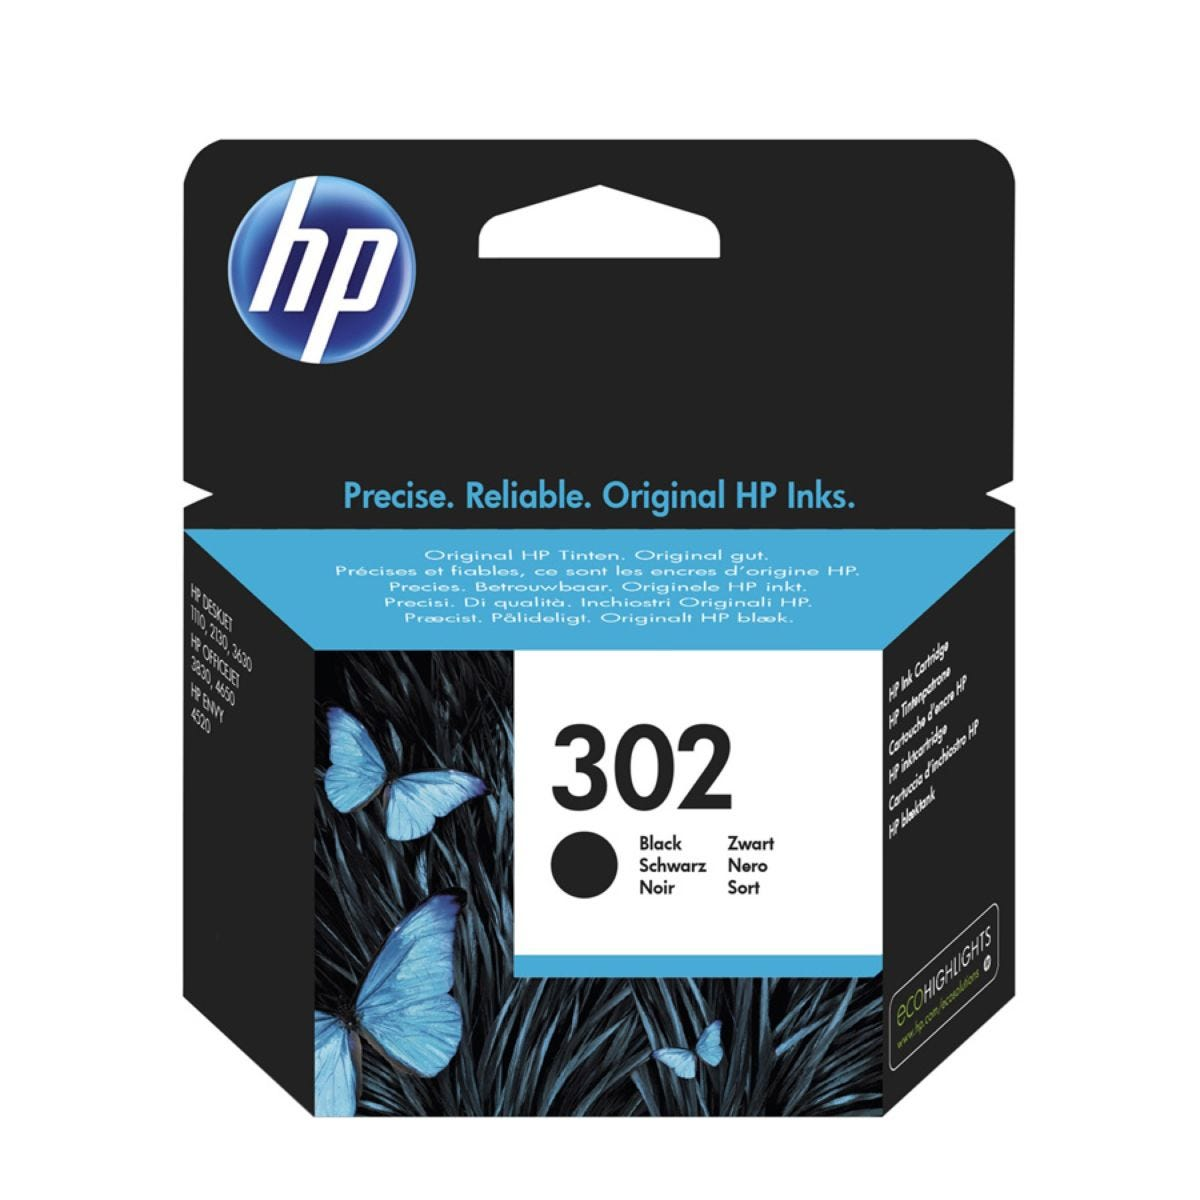 HP Hewlett-Packard 302 Black Ink cartridge